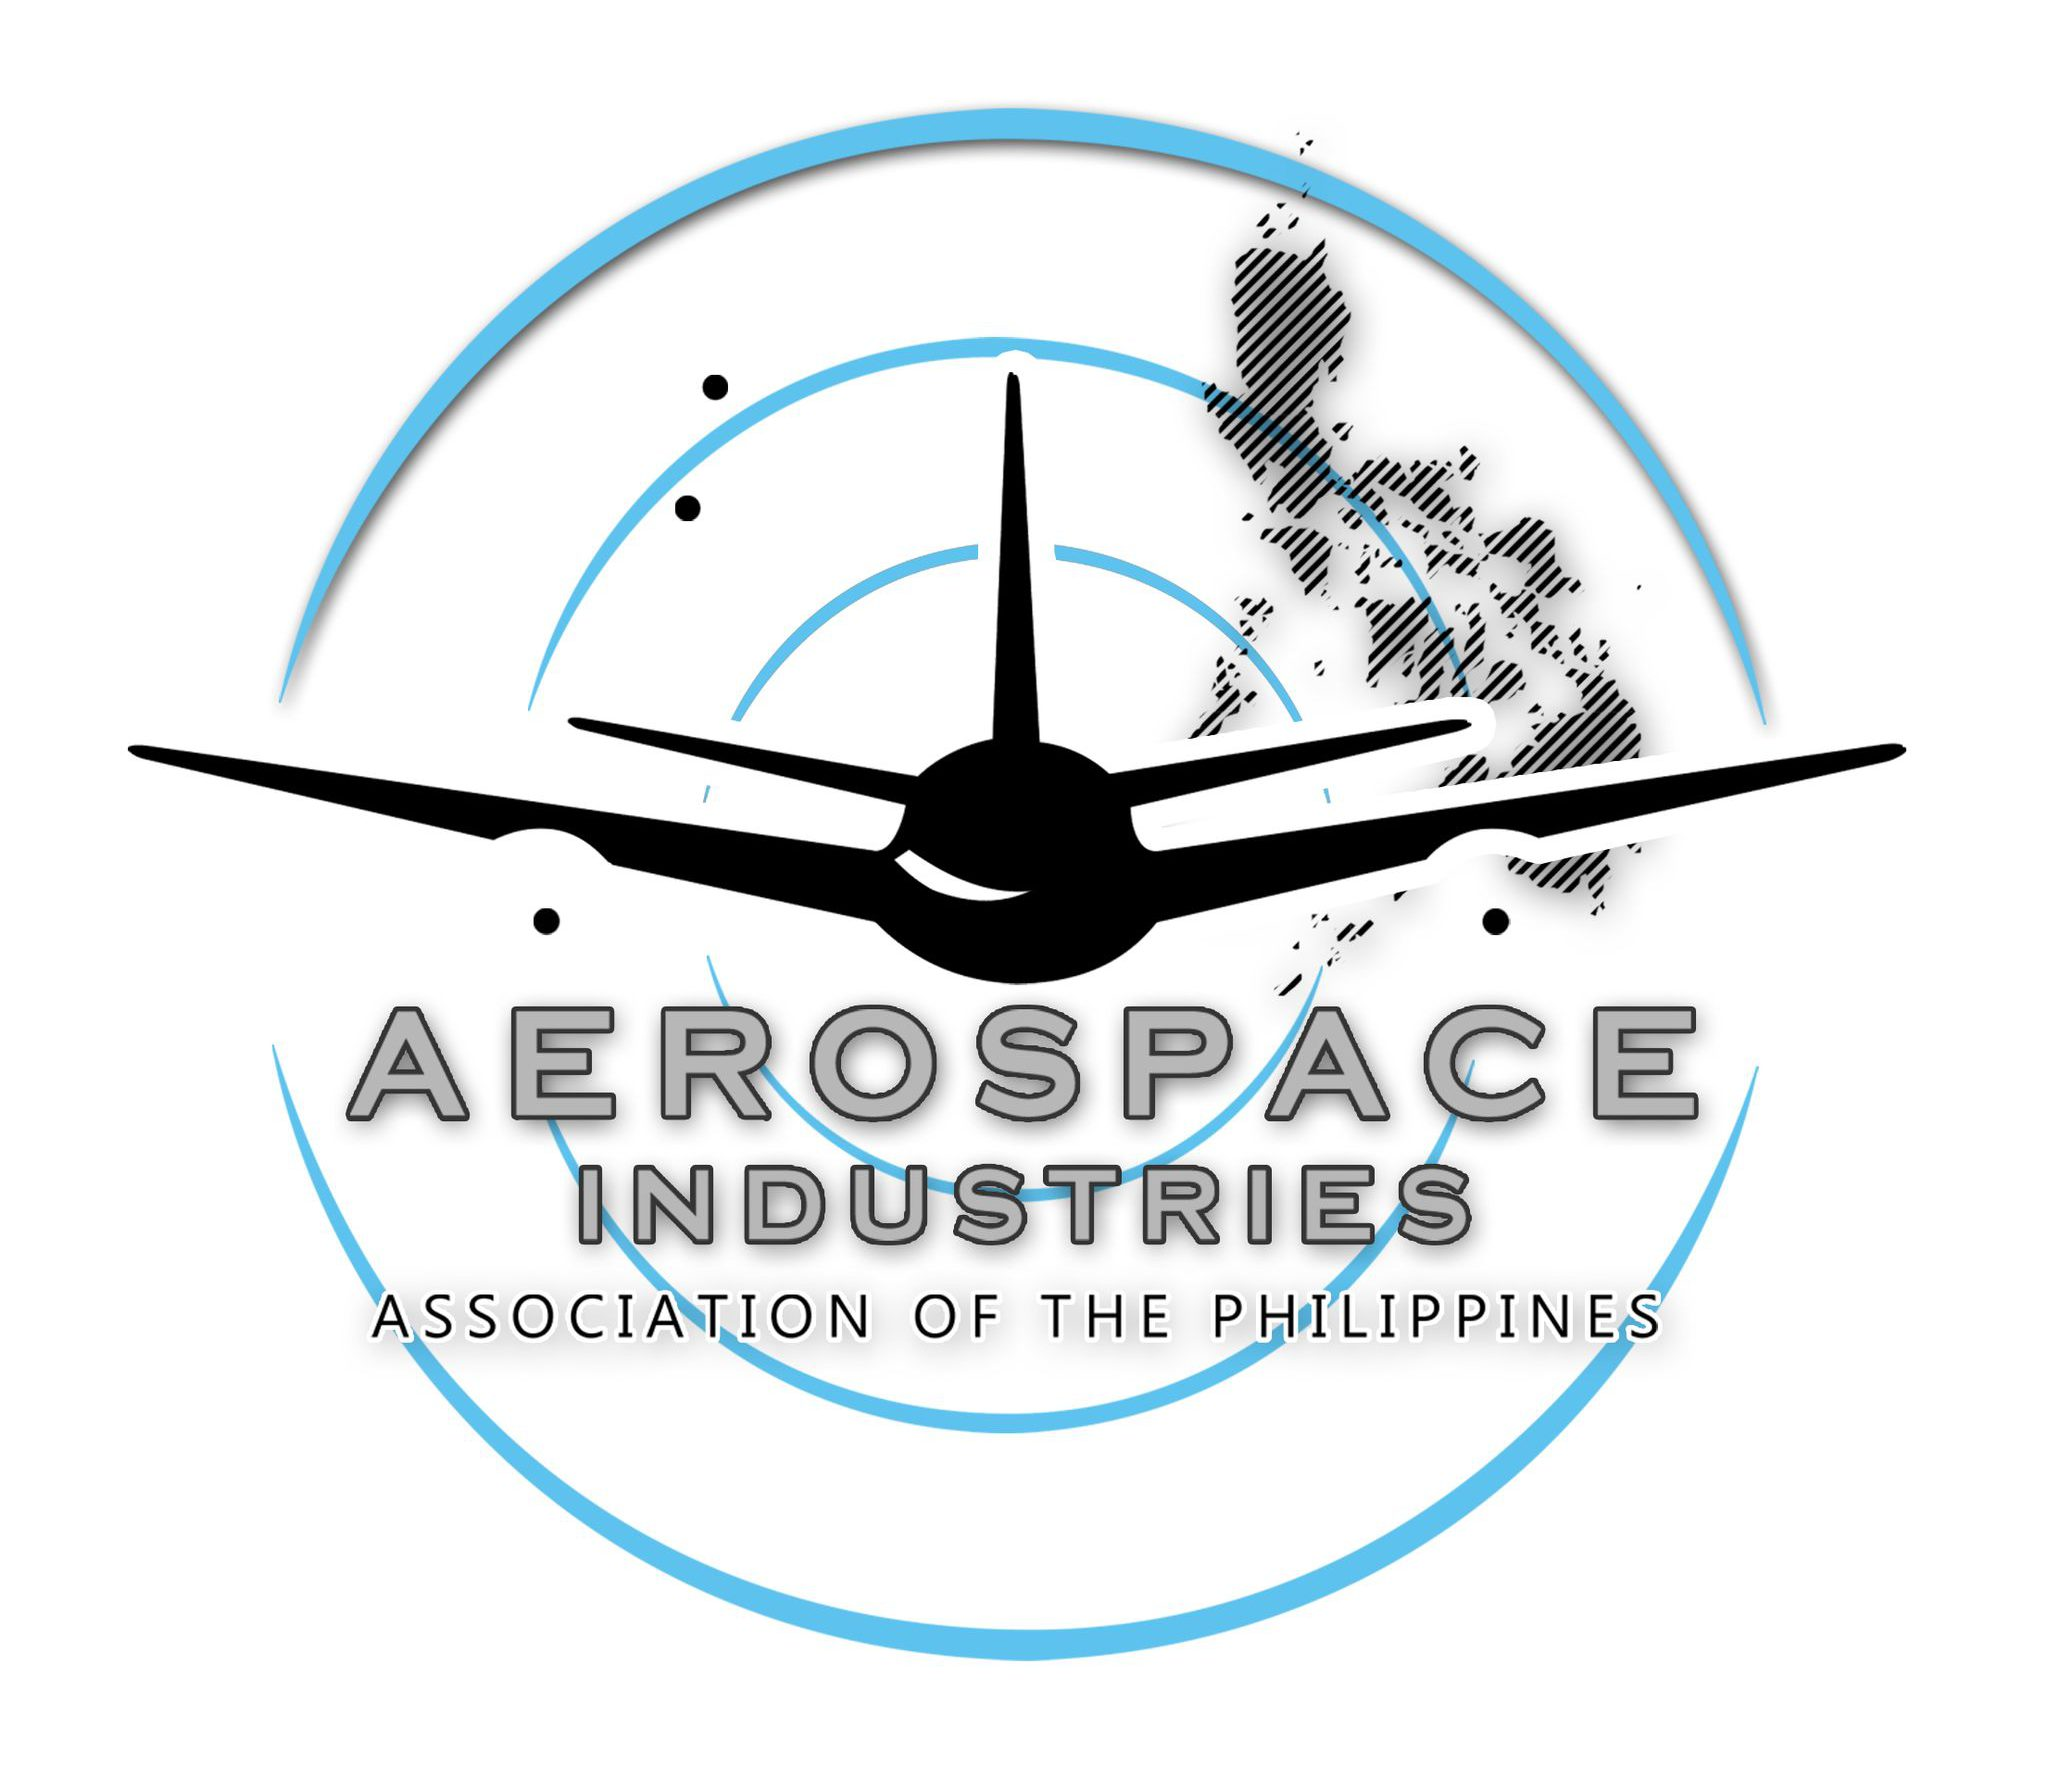 Aerospace Industries Association of the Philippines